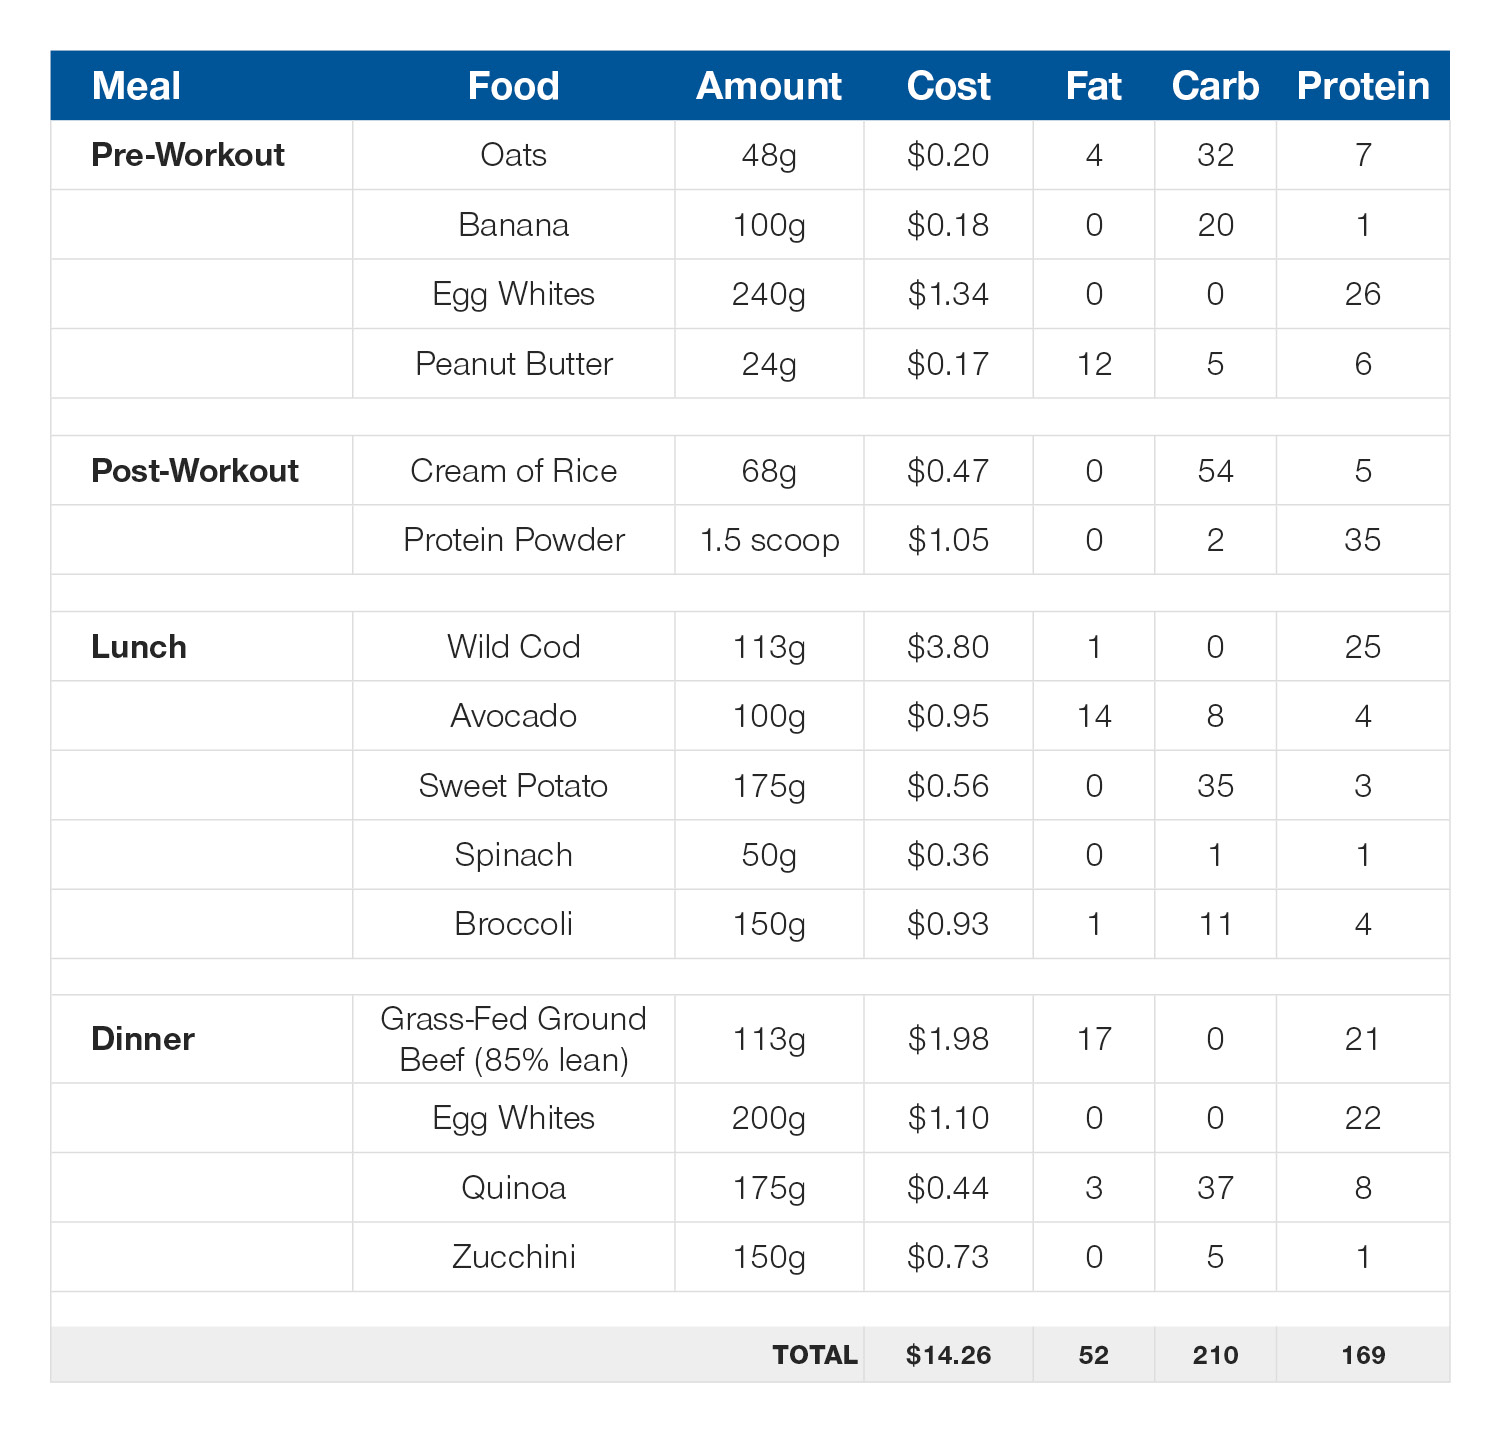 Daily meal plan: 170g protein, 52g fat, 210g carb